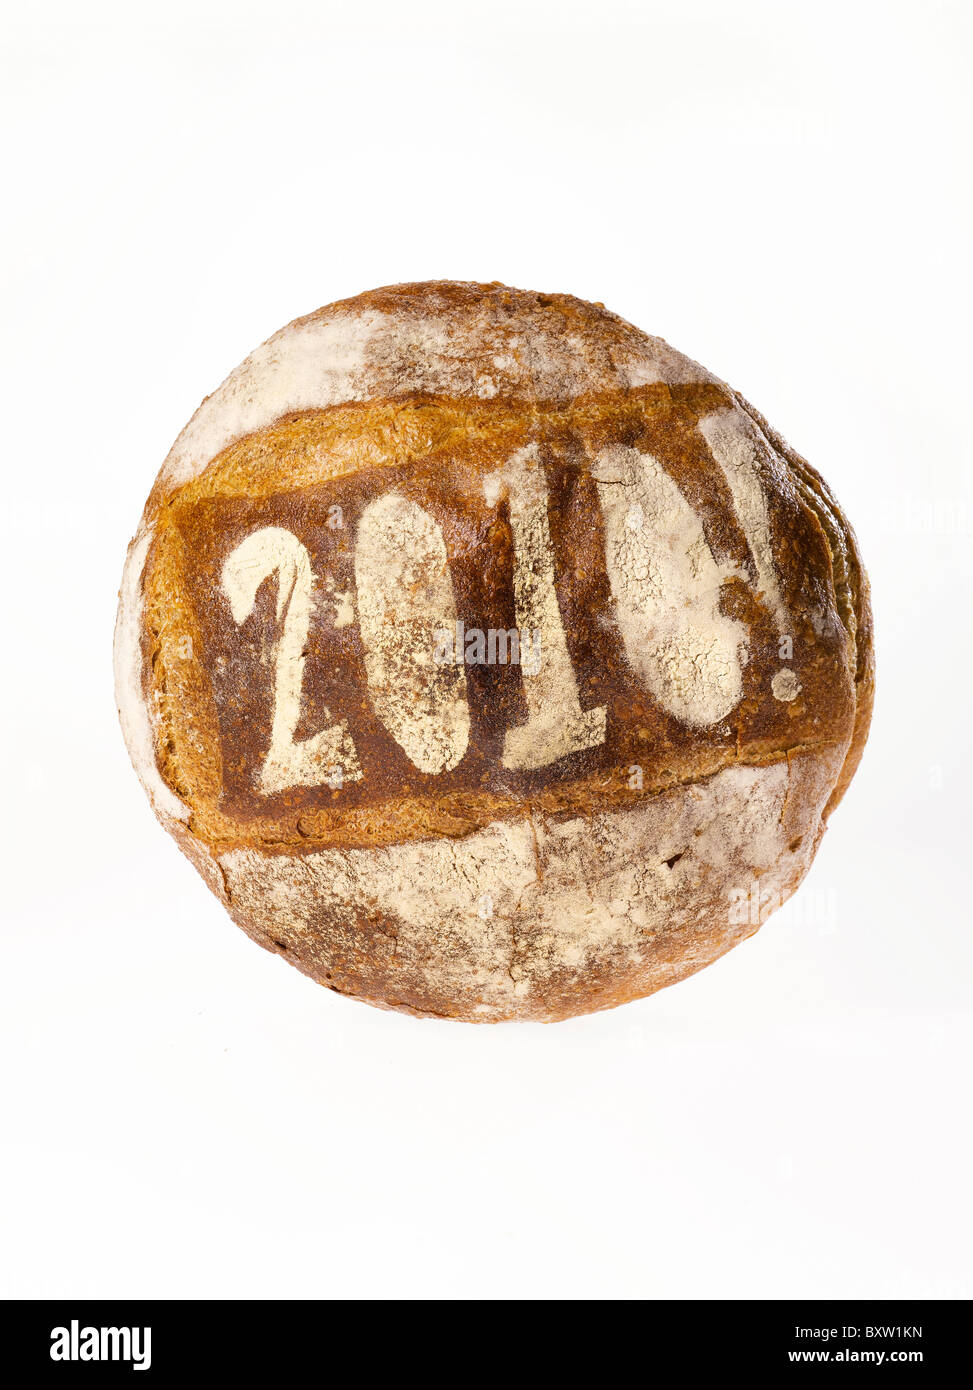 round loaf of bread stenciled with the year 2010 - Stock Image